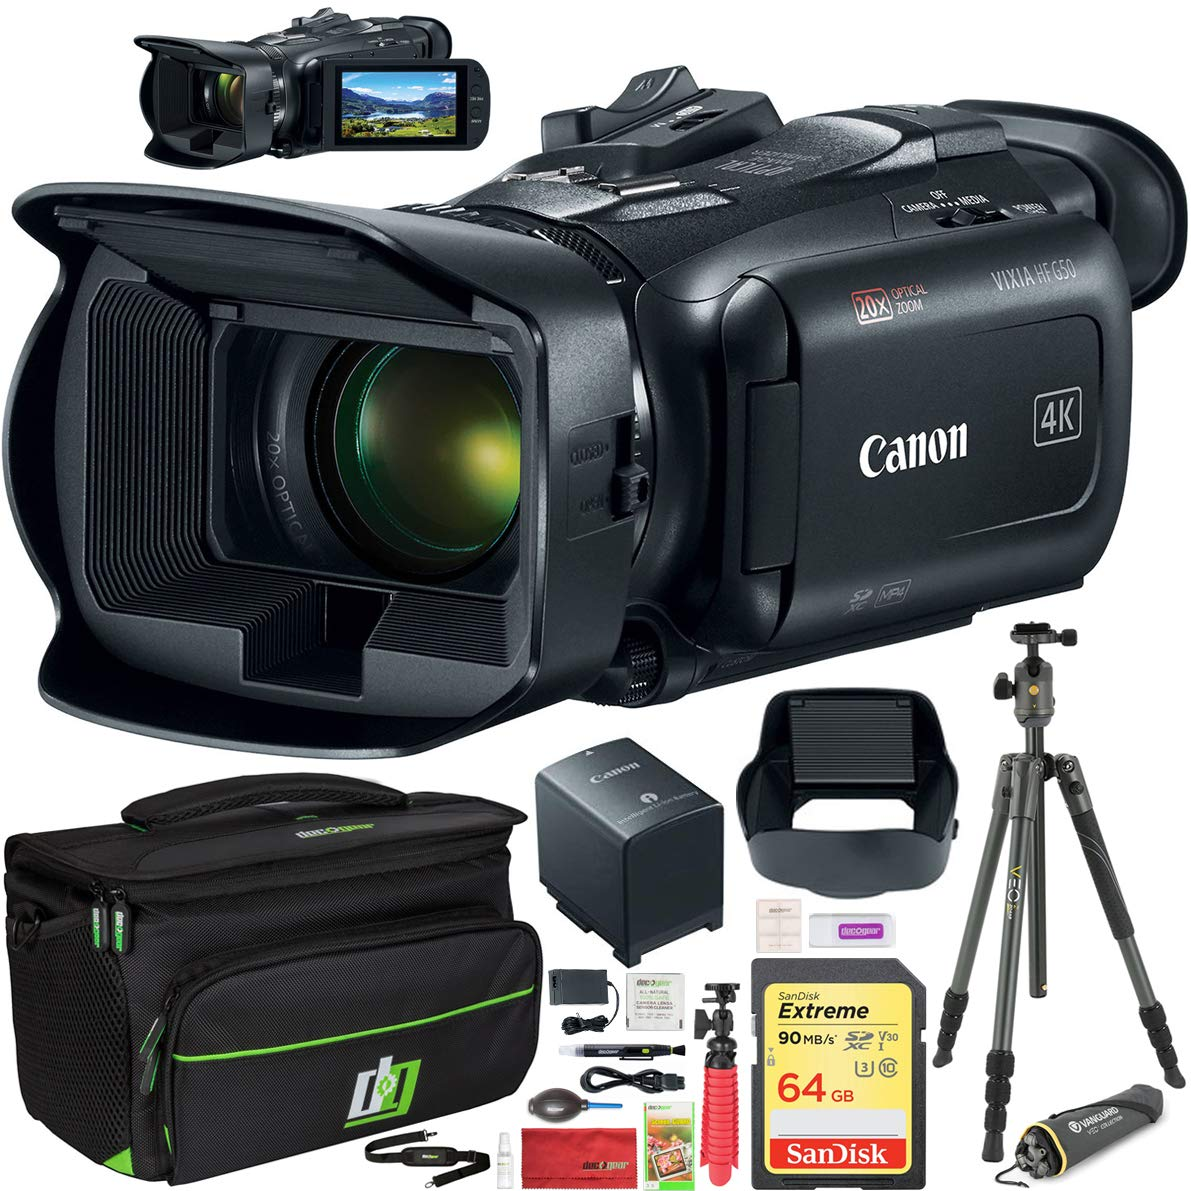 Canon Vixia HF G50 4K UHD Ultra HD Video Camcorder with 20x Optical Zoom Lens Includes Deco Gear Professional Camera Case and Vanguard VEO 2 204AB Tripod + Cleaning Kit Accessory Set Essential Bundle